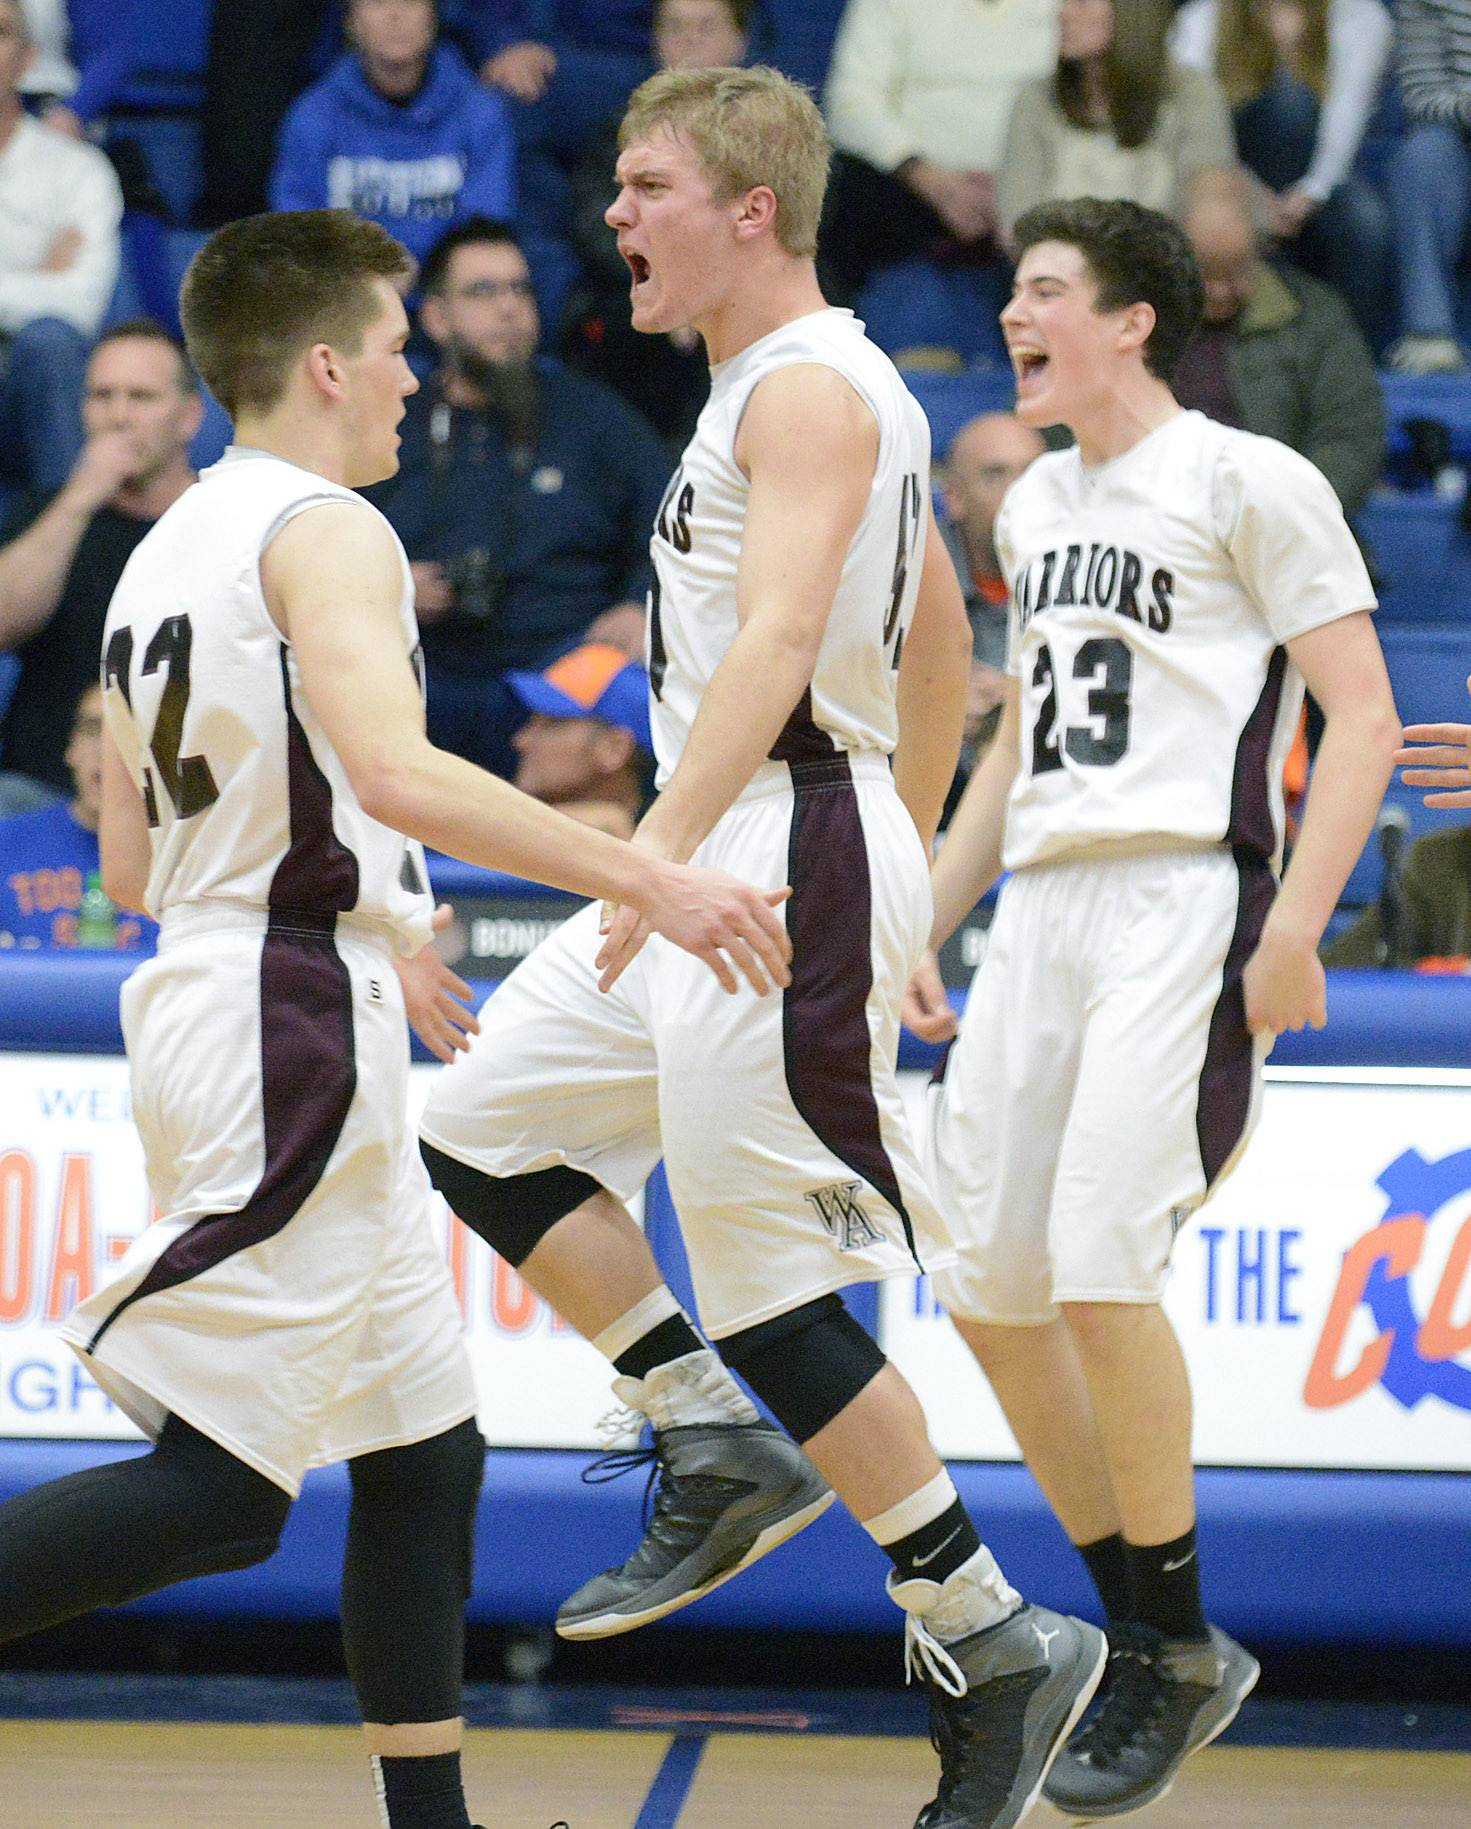 Wheaton Academy's Jacob Lindstedt leaps with excitement onto the court as a time out is called after they scored to take the lead in the fourth quarter.